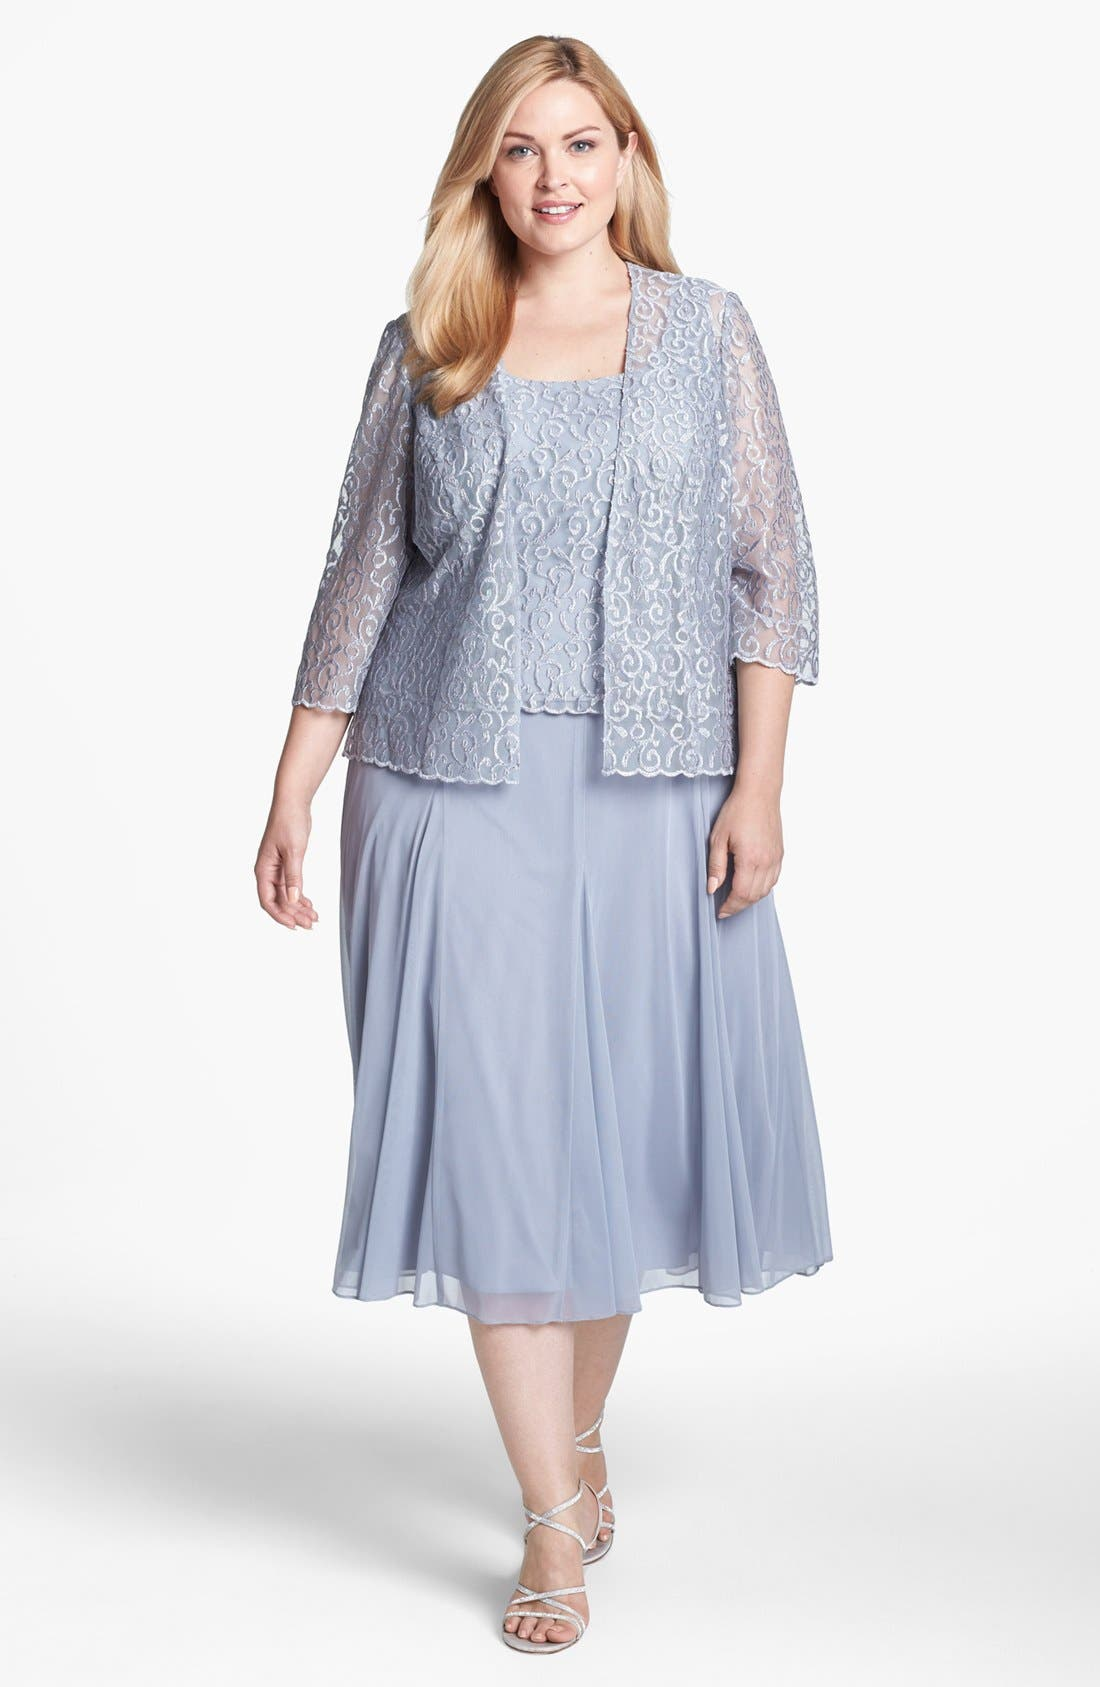 Alternate Image 1 Selected - Alex Evenings Mixed Media Dress & Jacket (Plus Size)